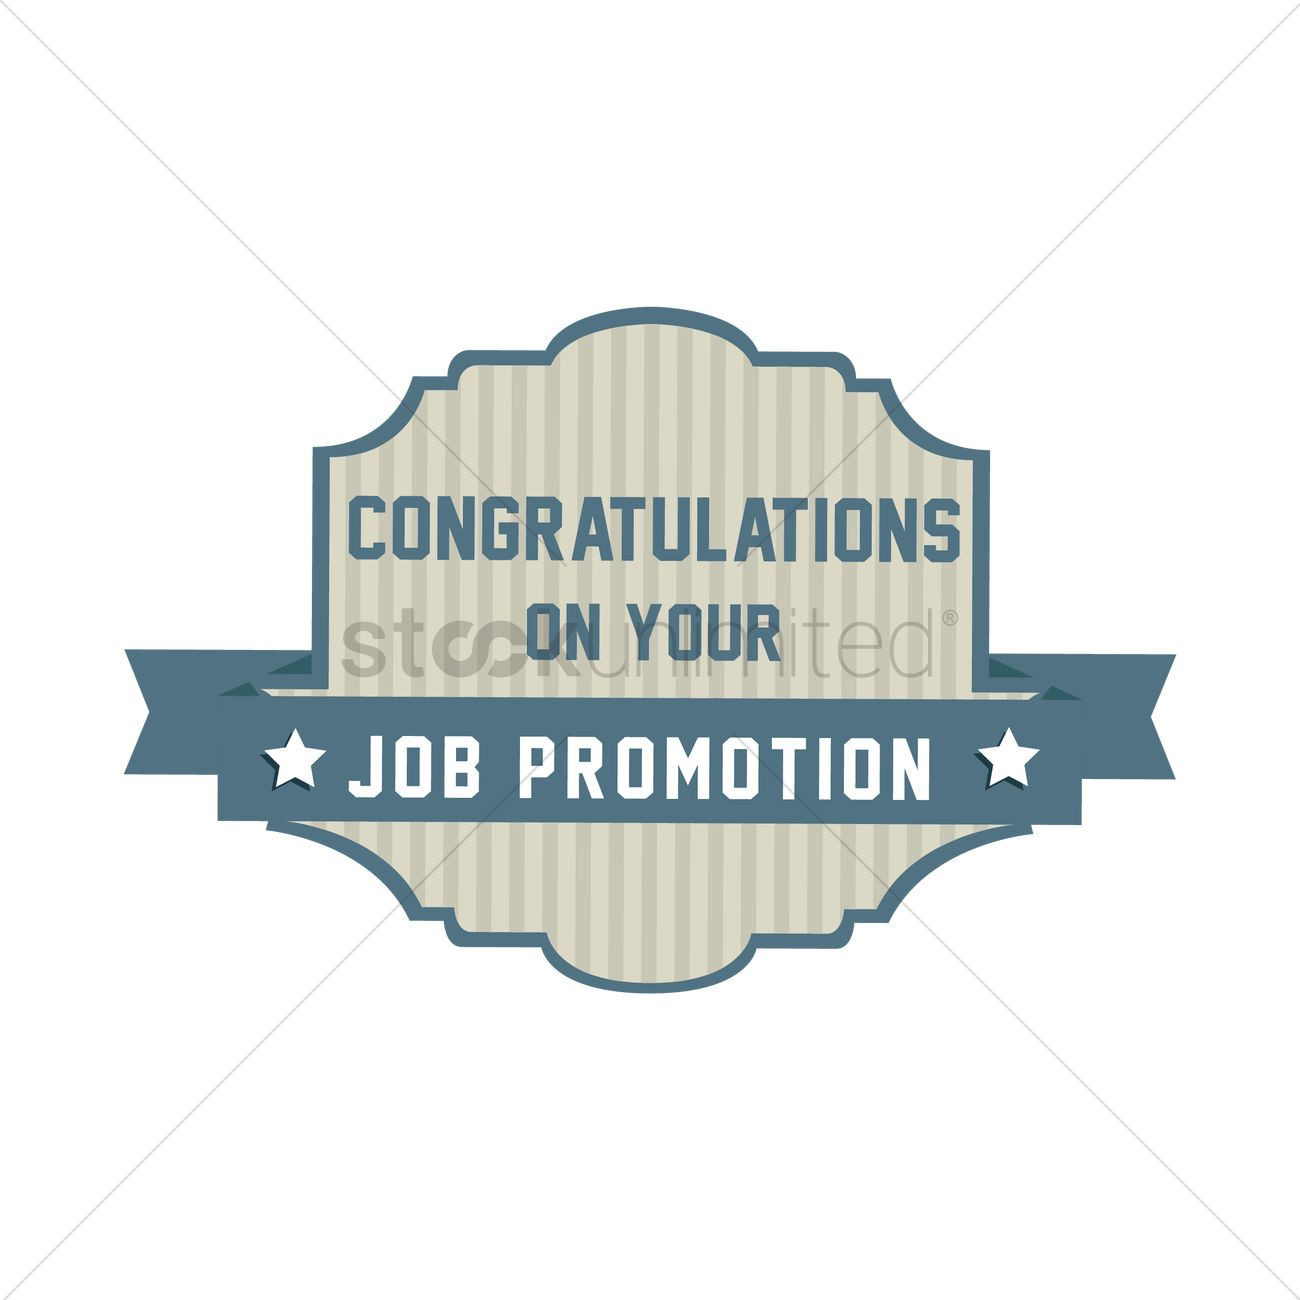 Congratulations for promotion in job - photo#39